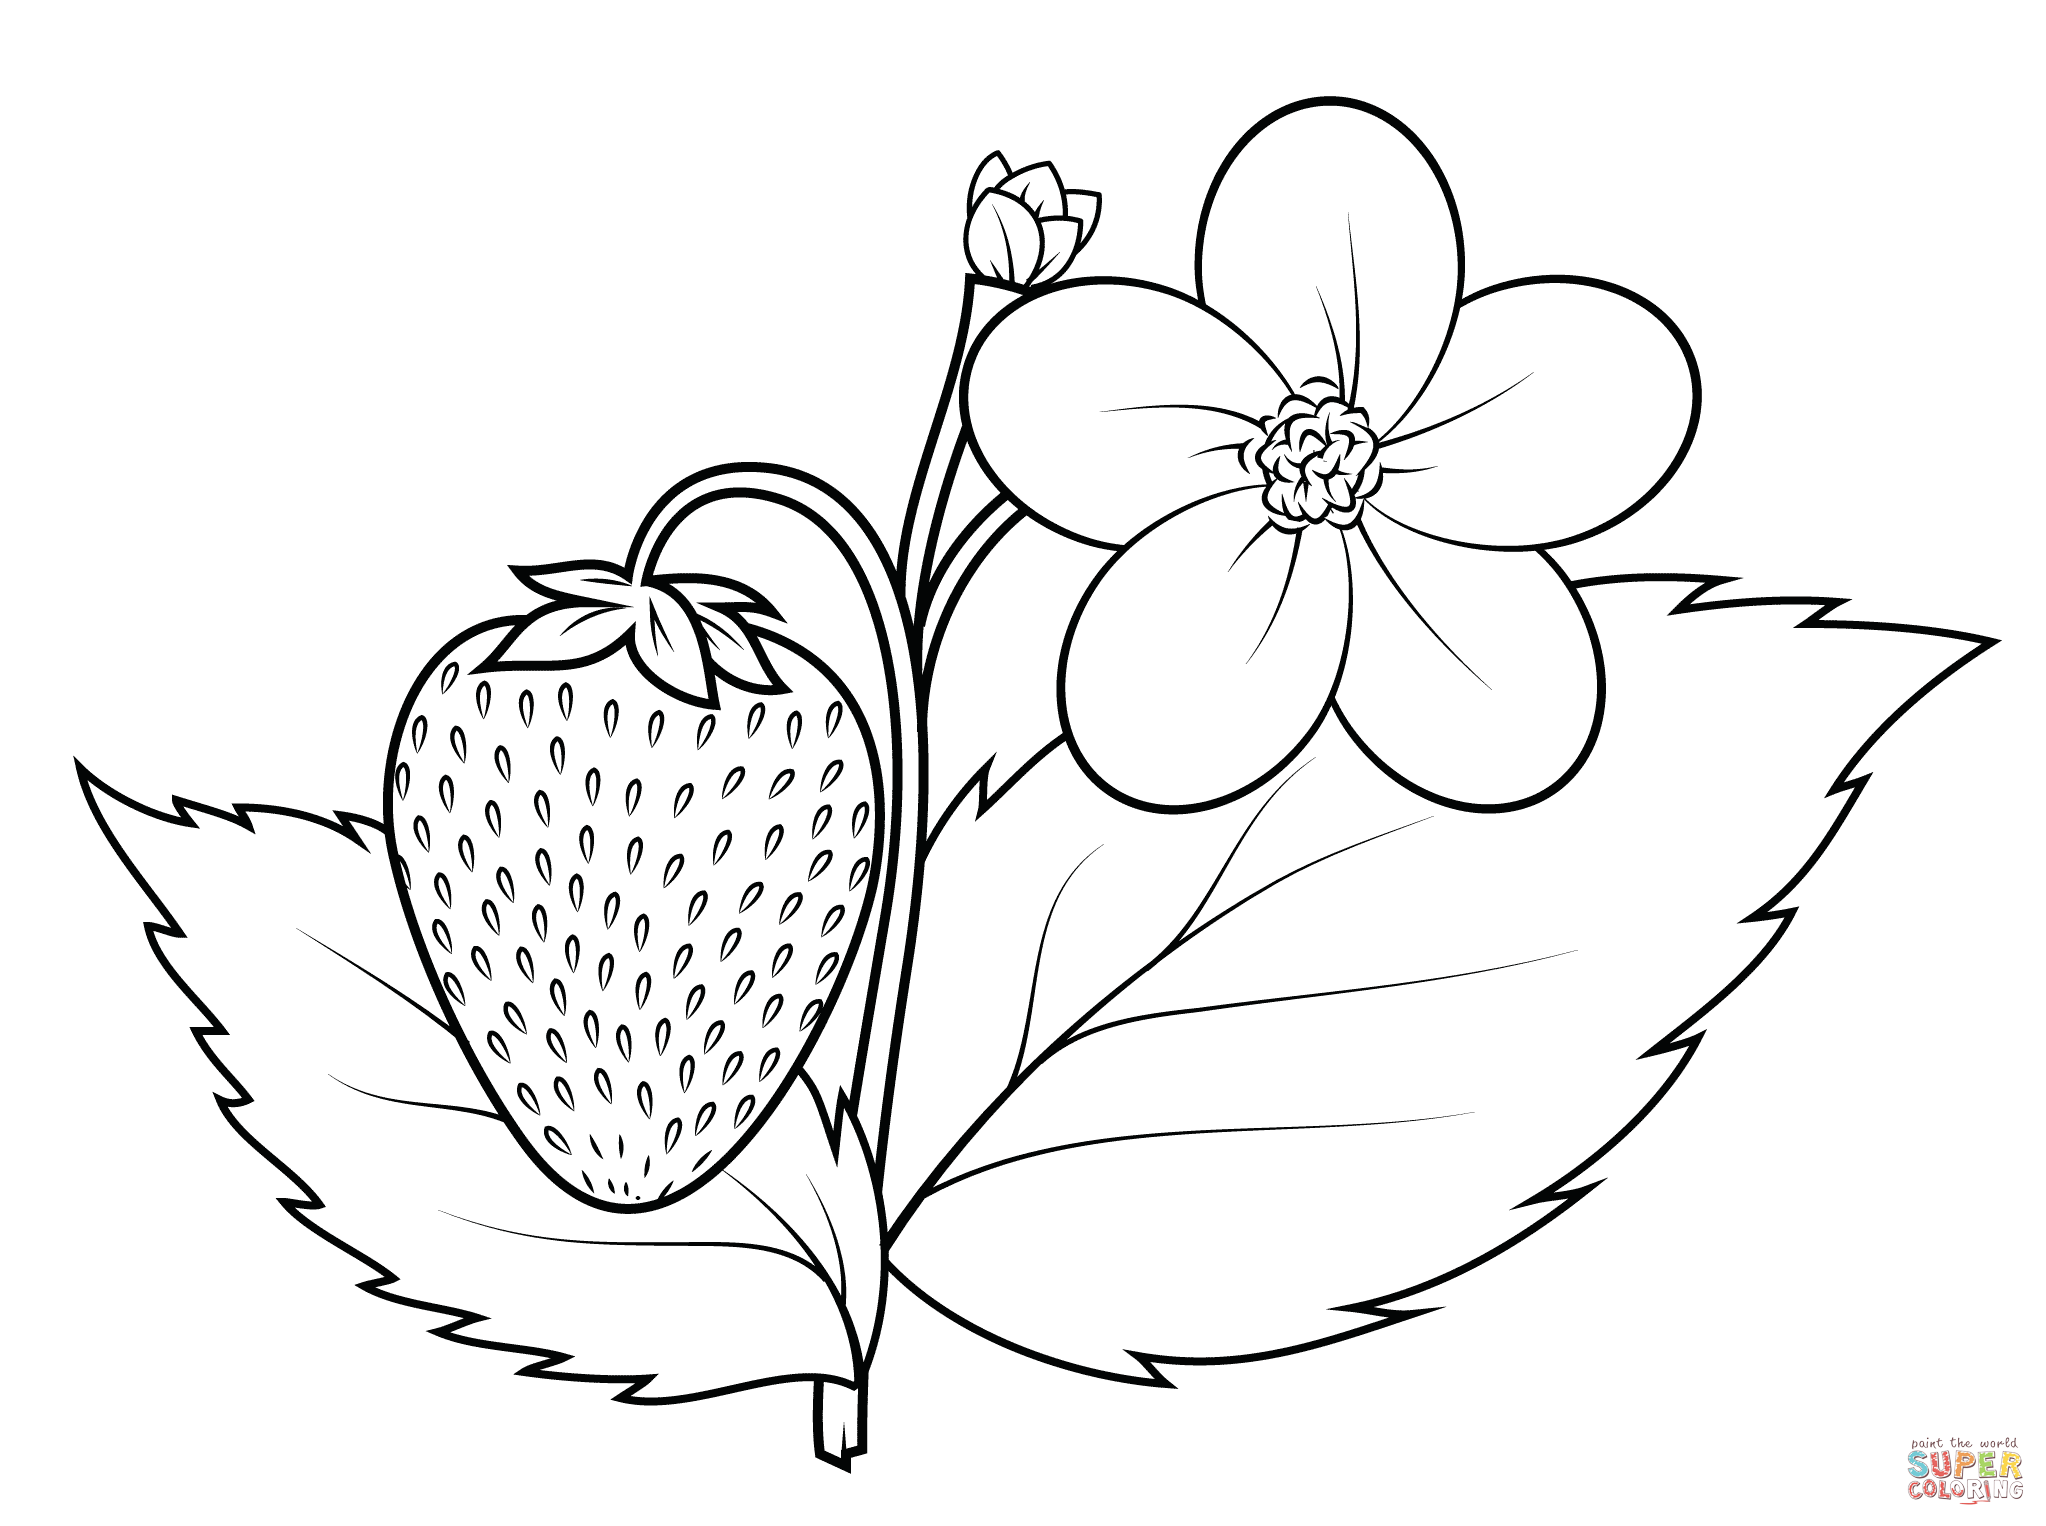 Strawberry Plant Coloring Page Free Printable Coloring Pages